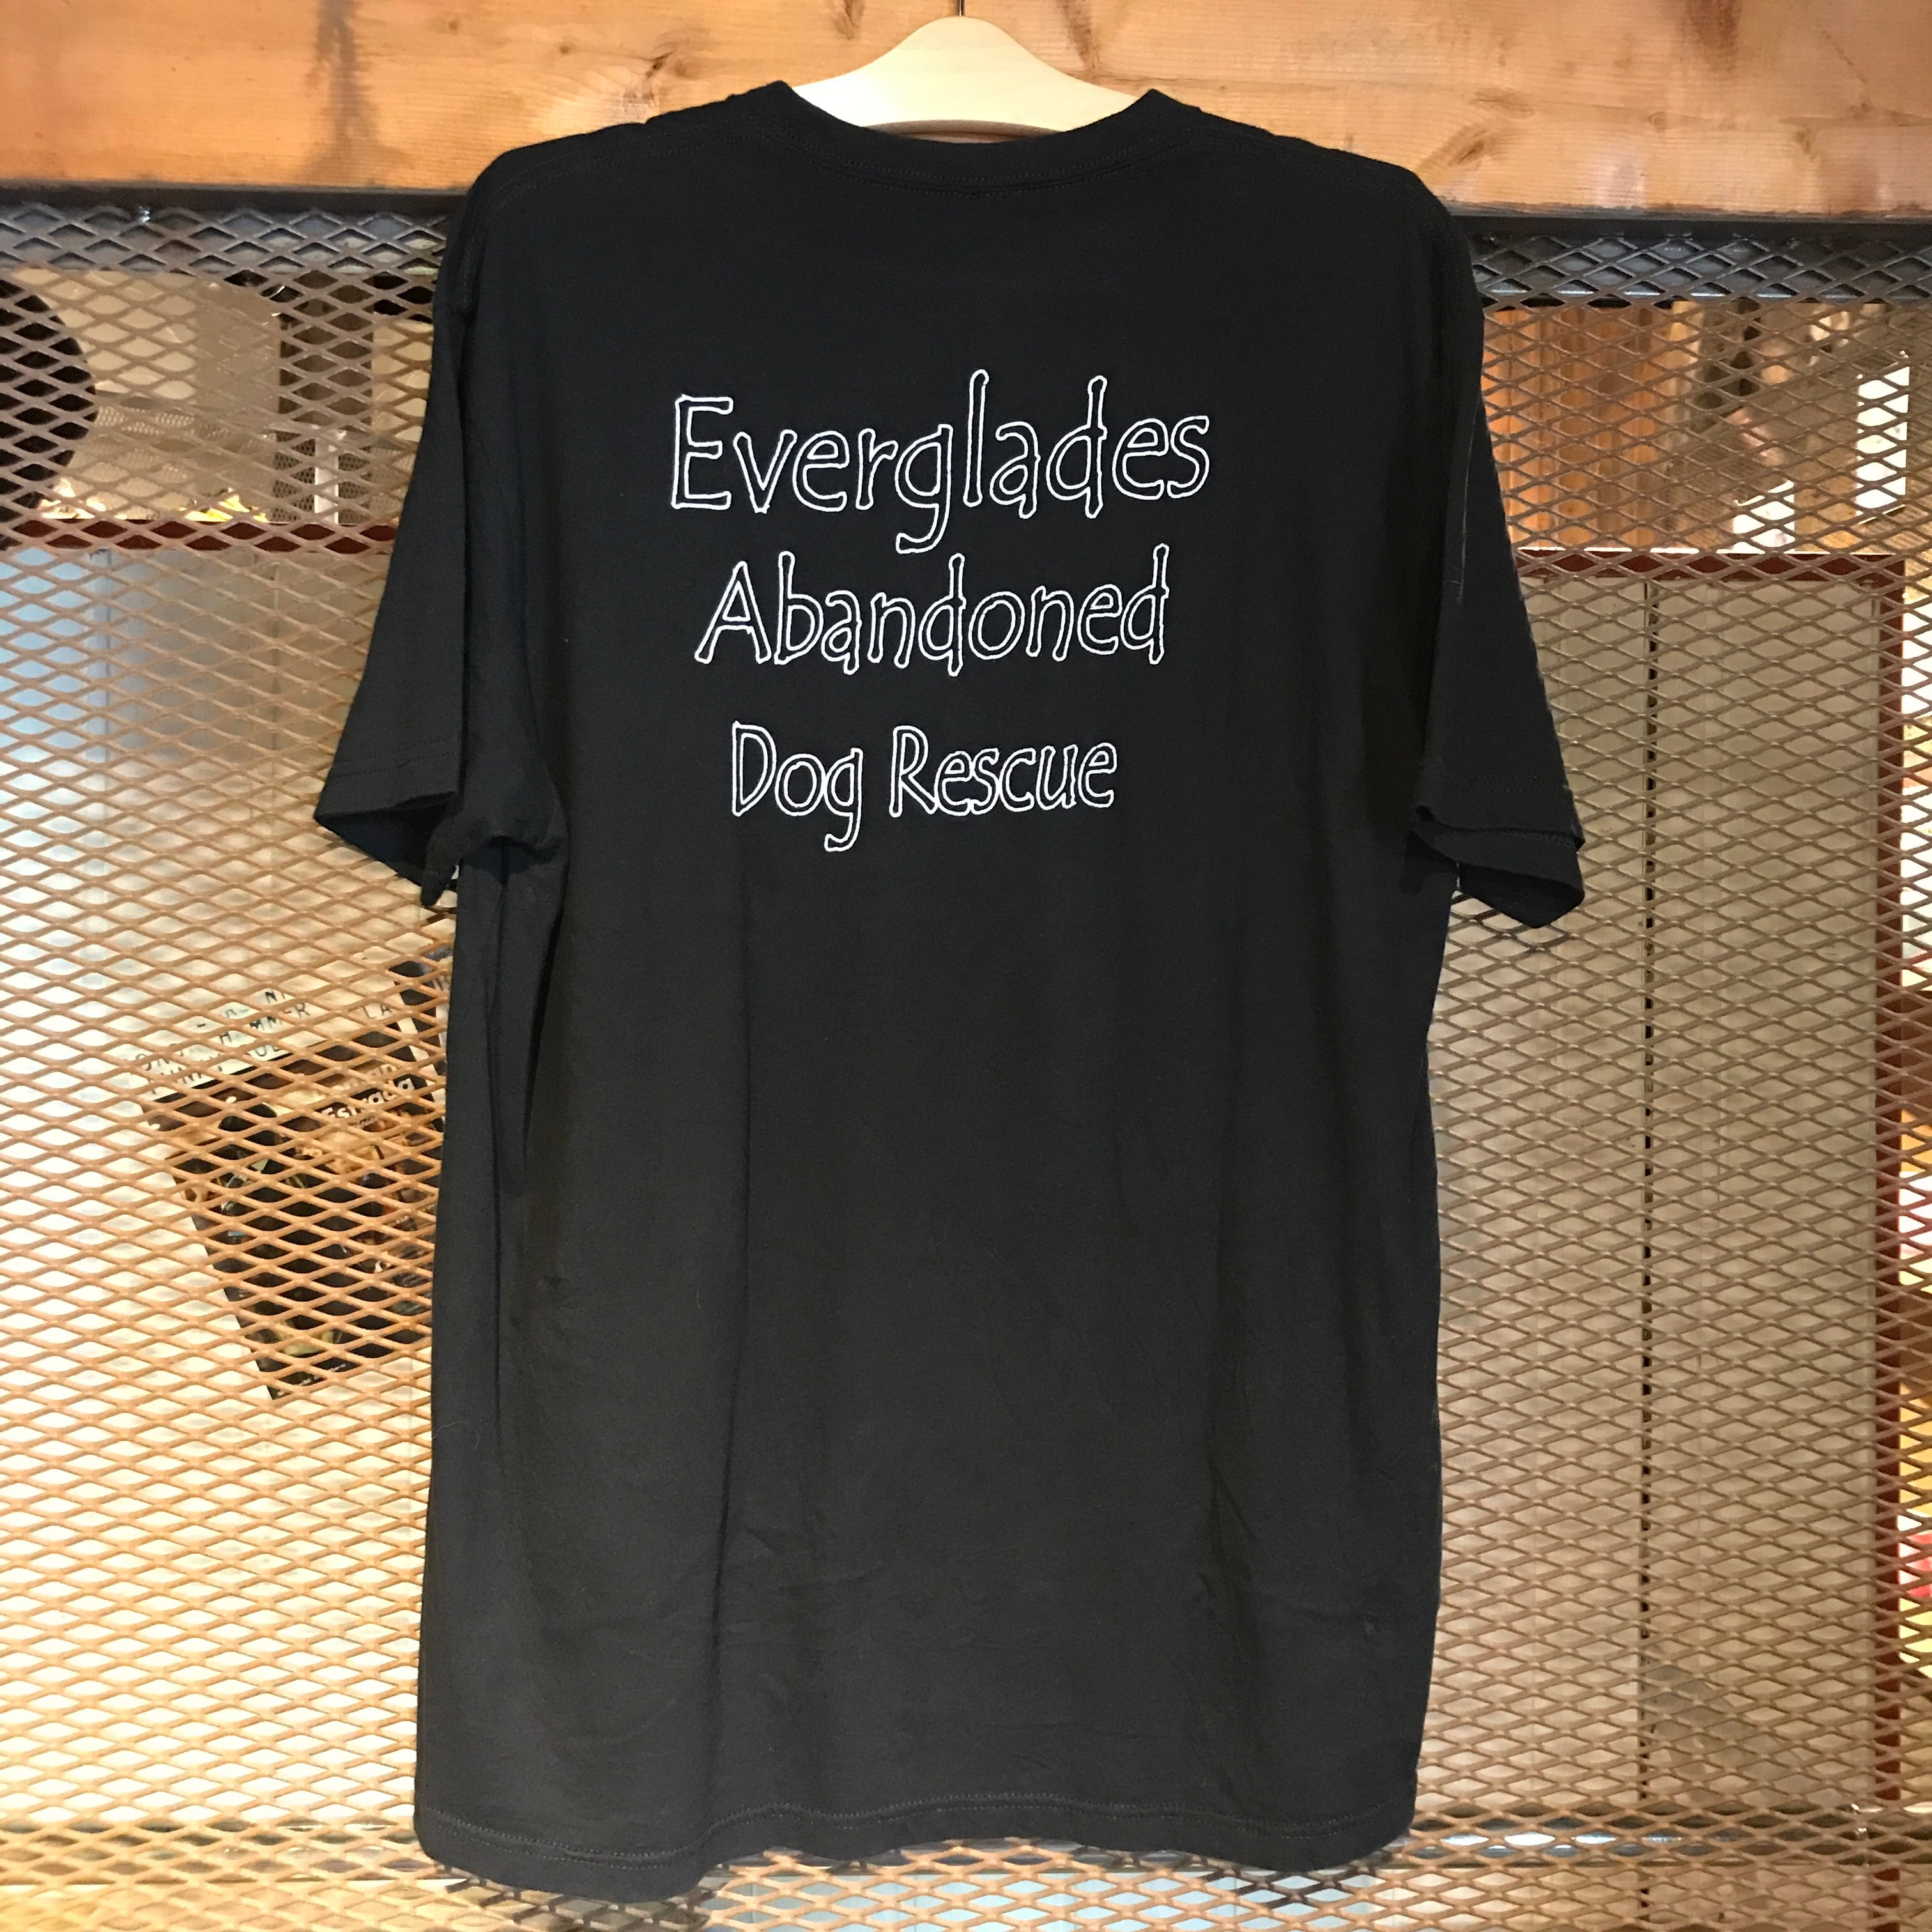 【Used】Dog Rescue Tee